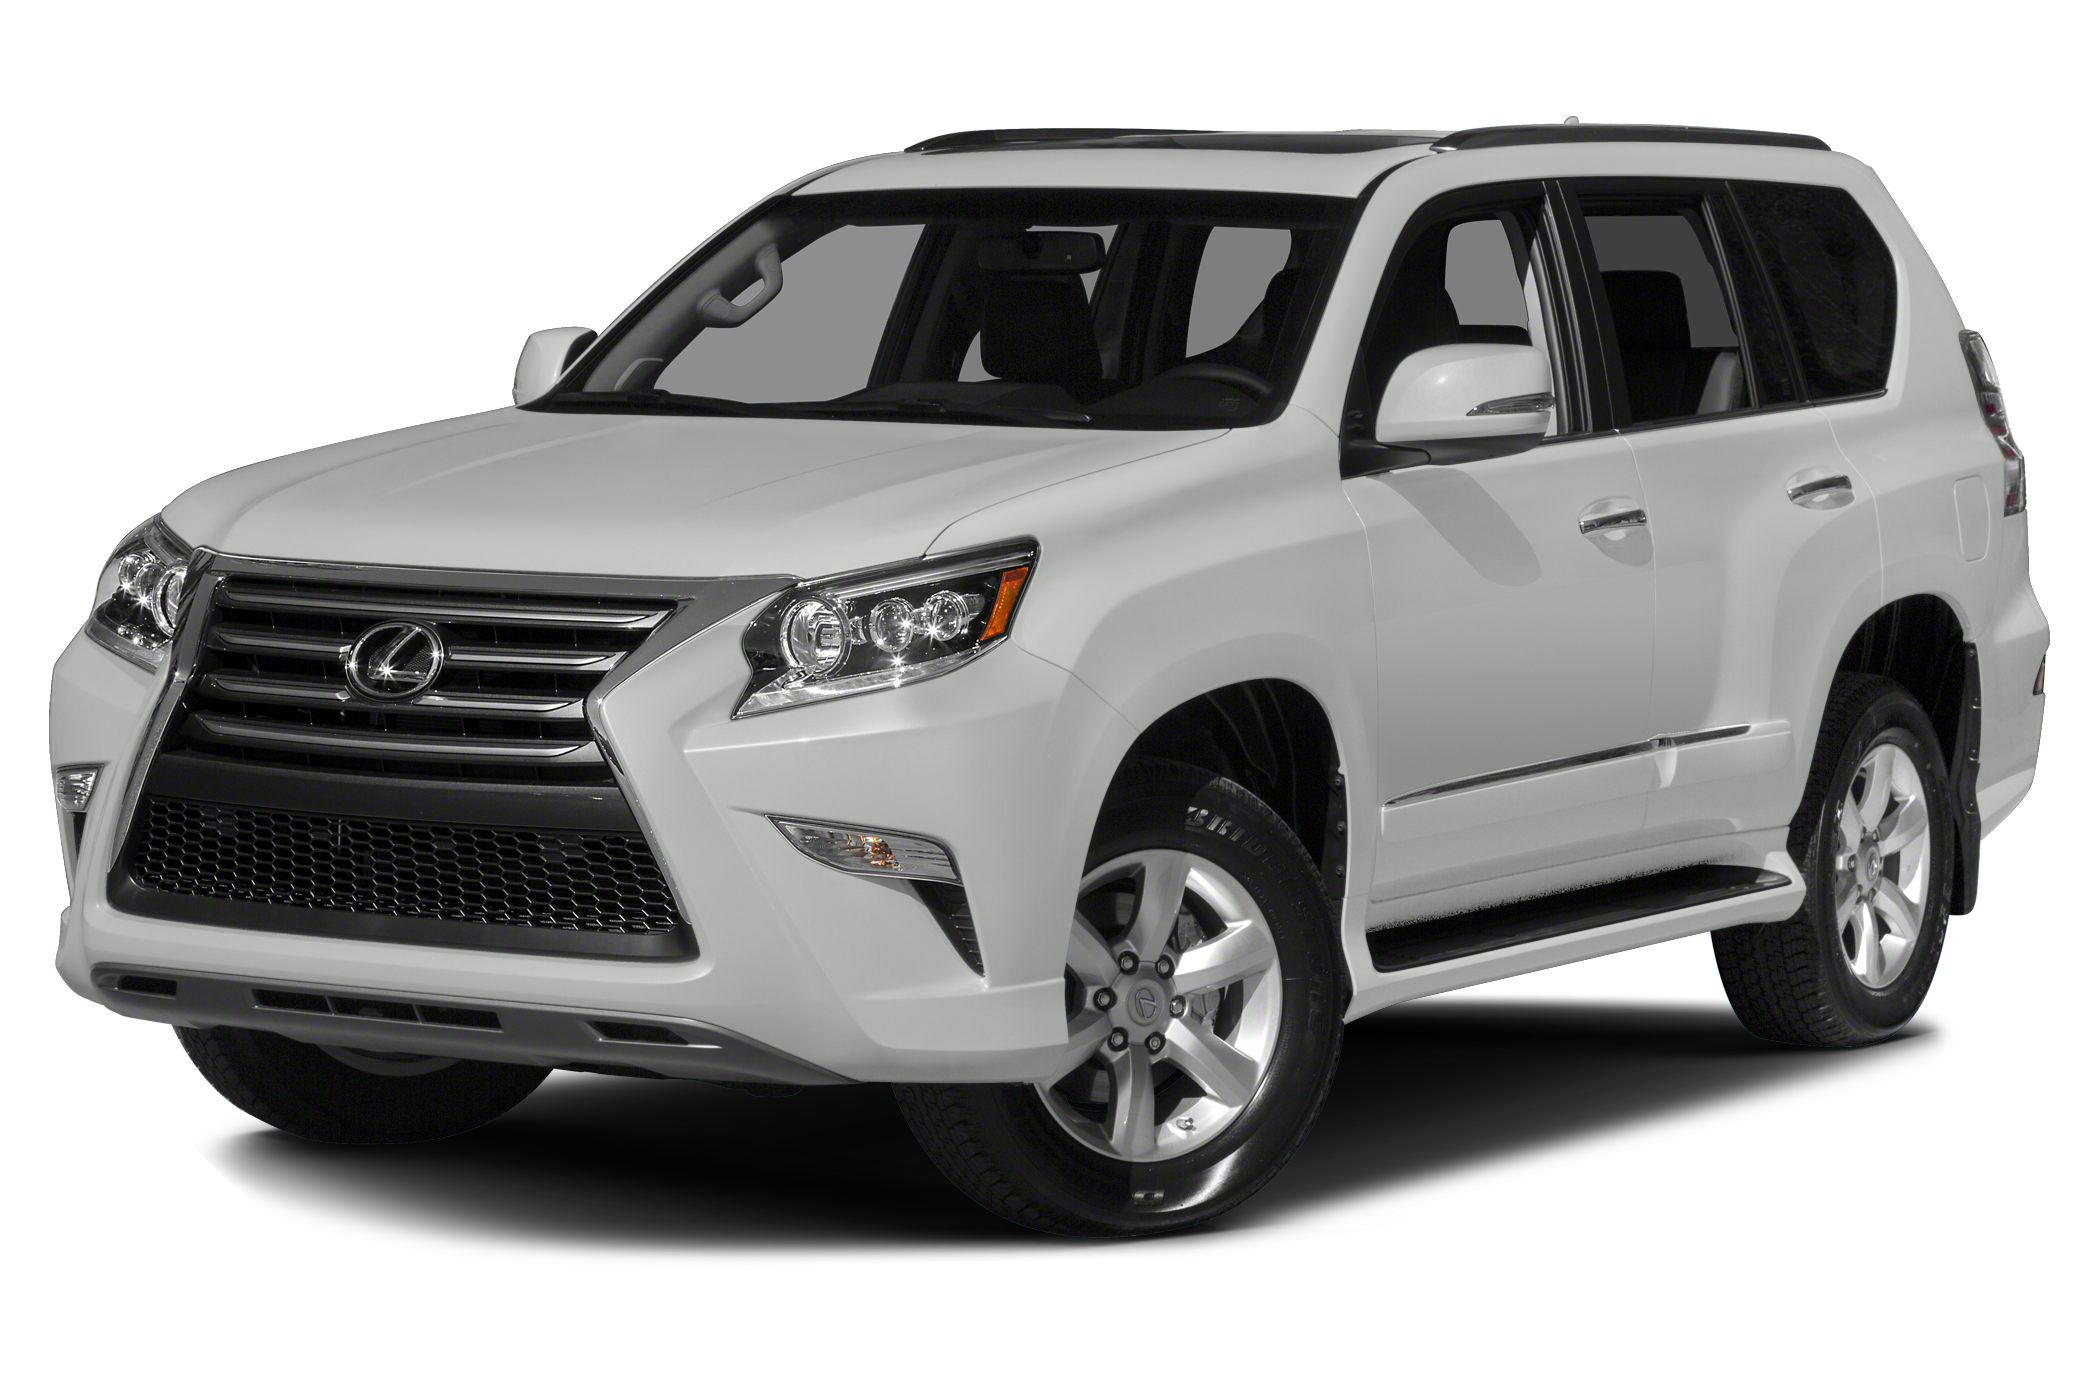 2015 Lexus GX 460 Owners Manual